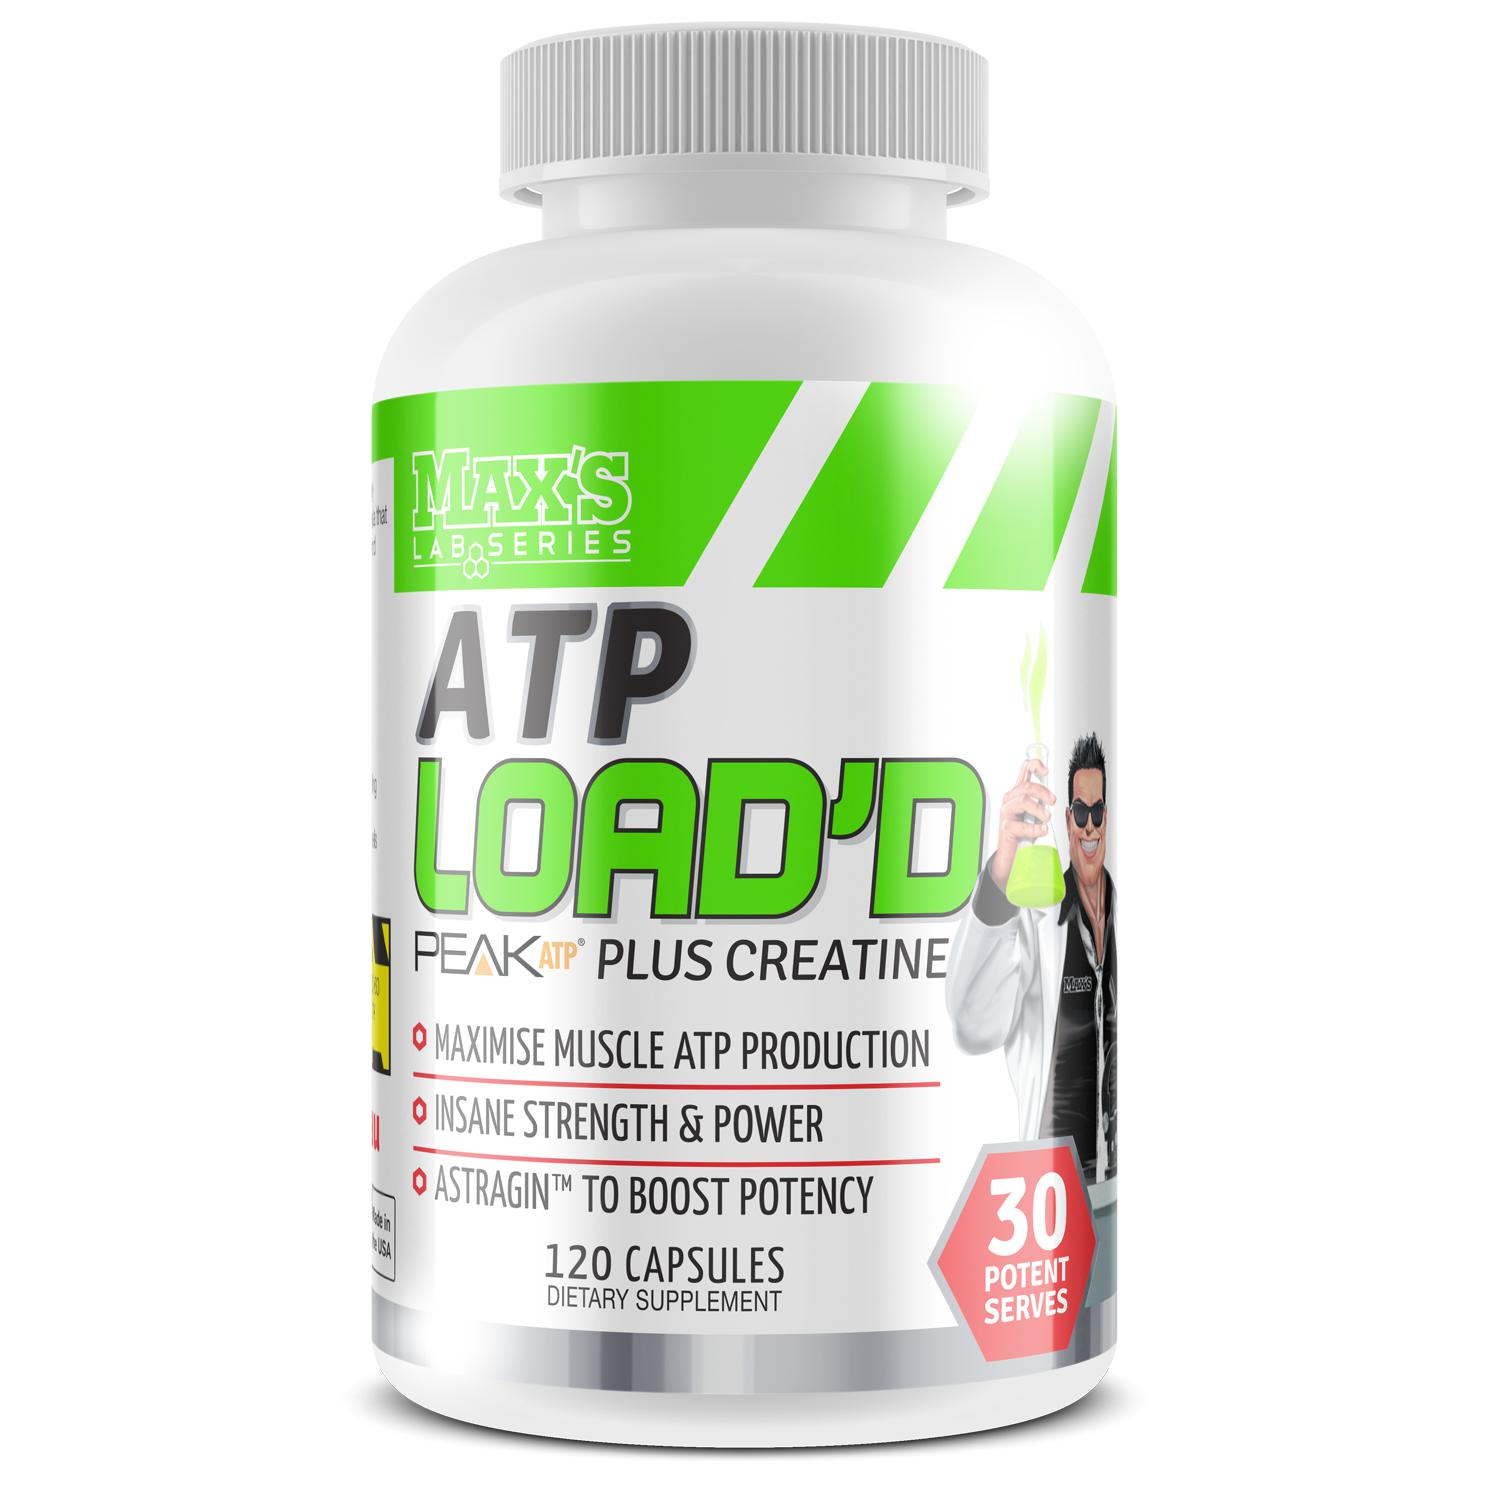 Maxs ATP Loaded-Sports Nutrition - Creatine-MAX-30 Serves-Thrive Health and Nutrition